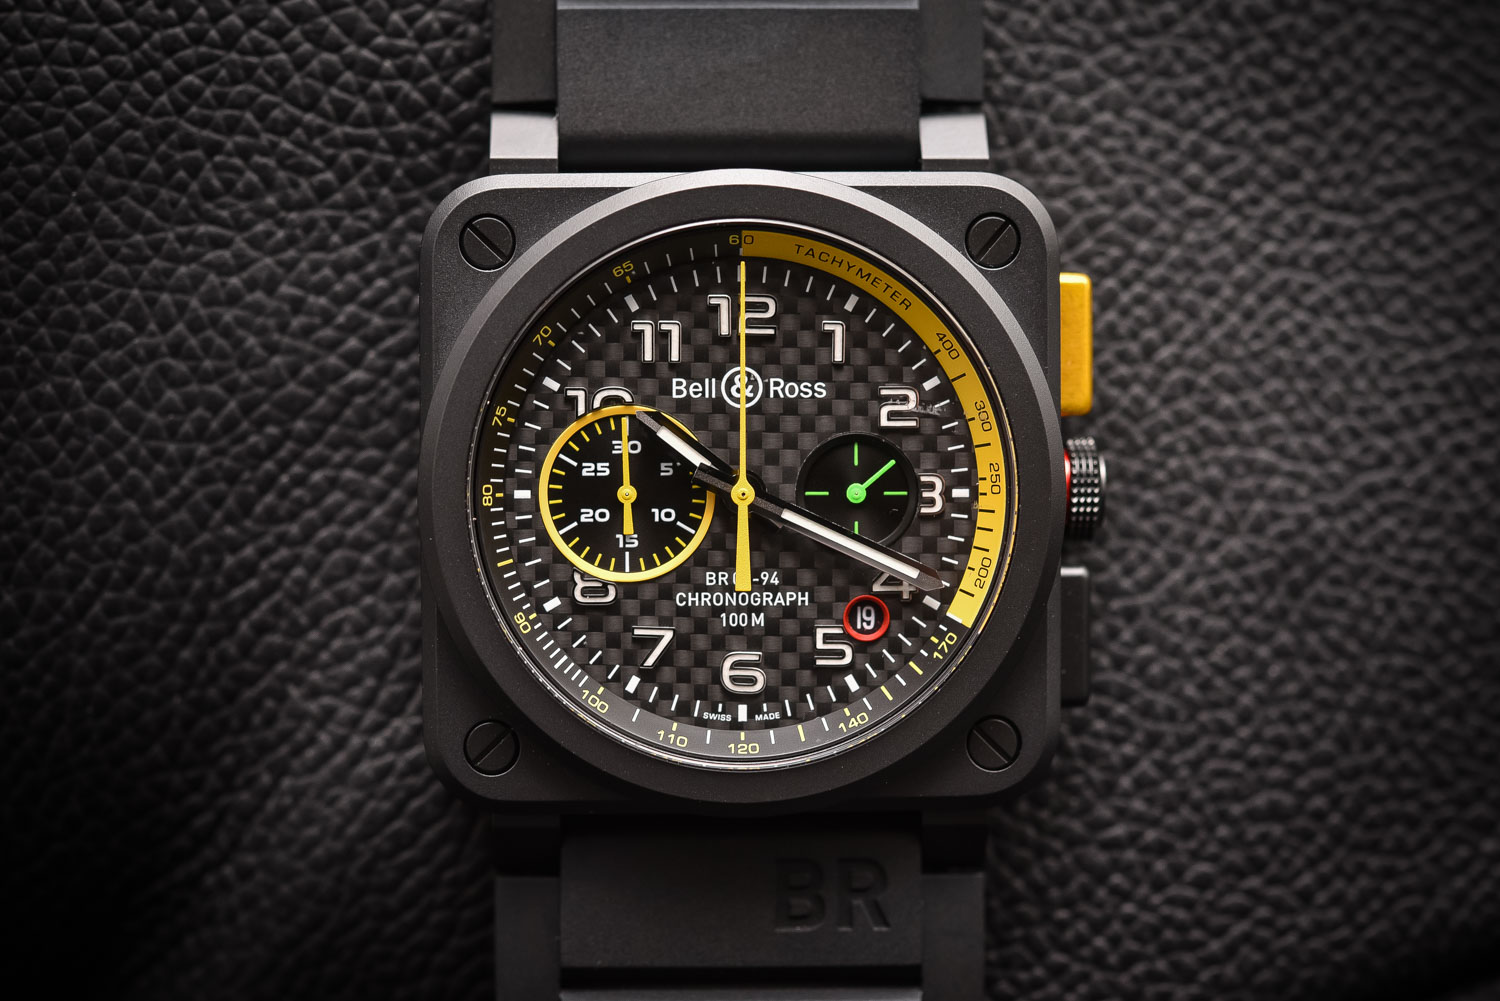 ross watches car monochrome bell inspired racing baselworld from auto chronograph